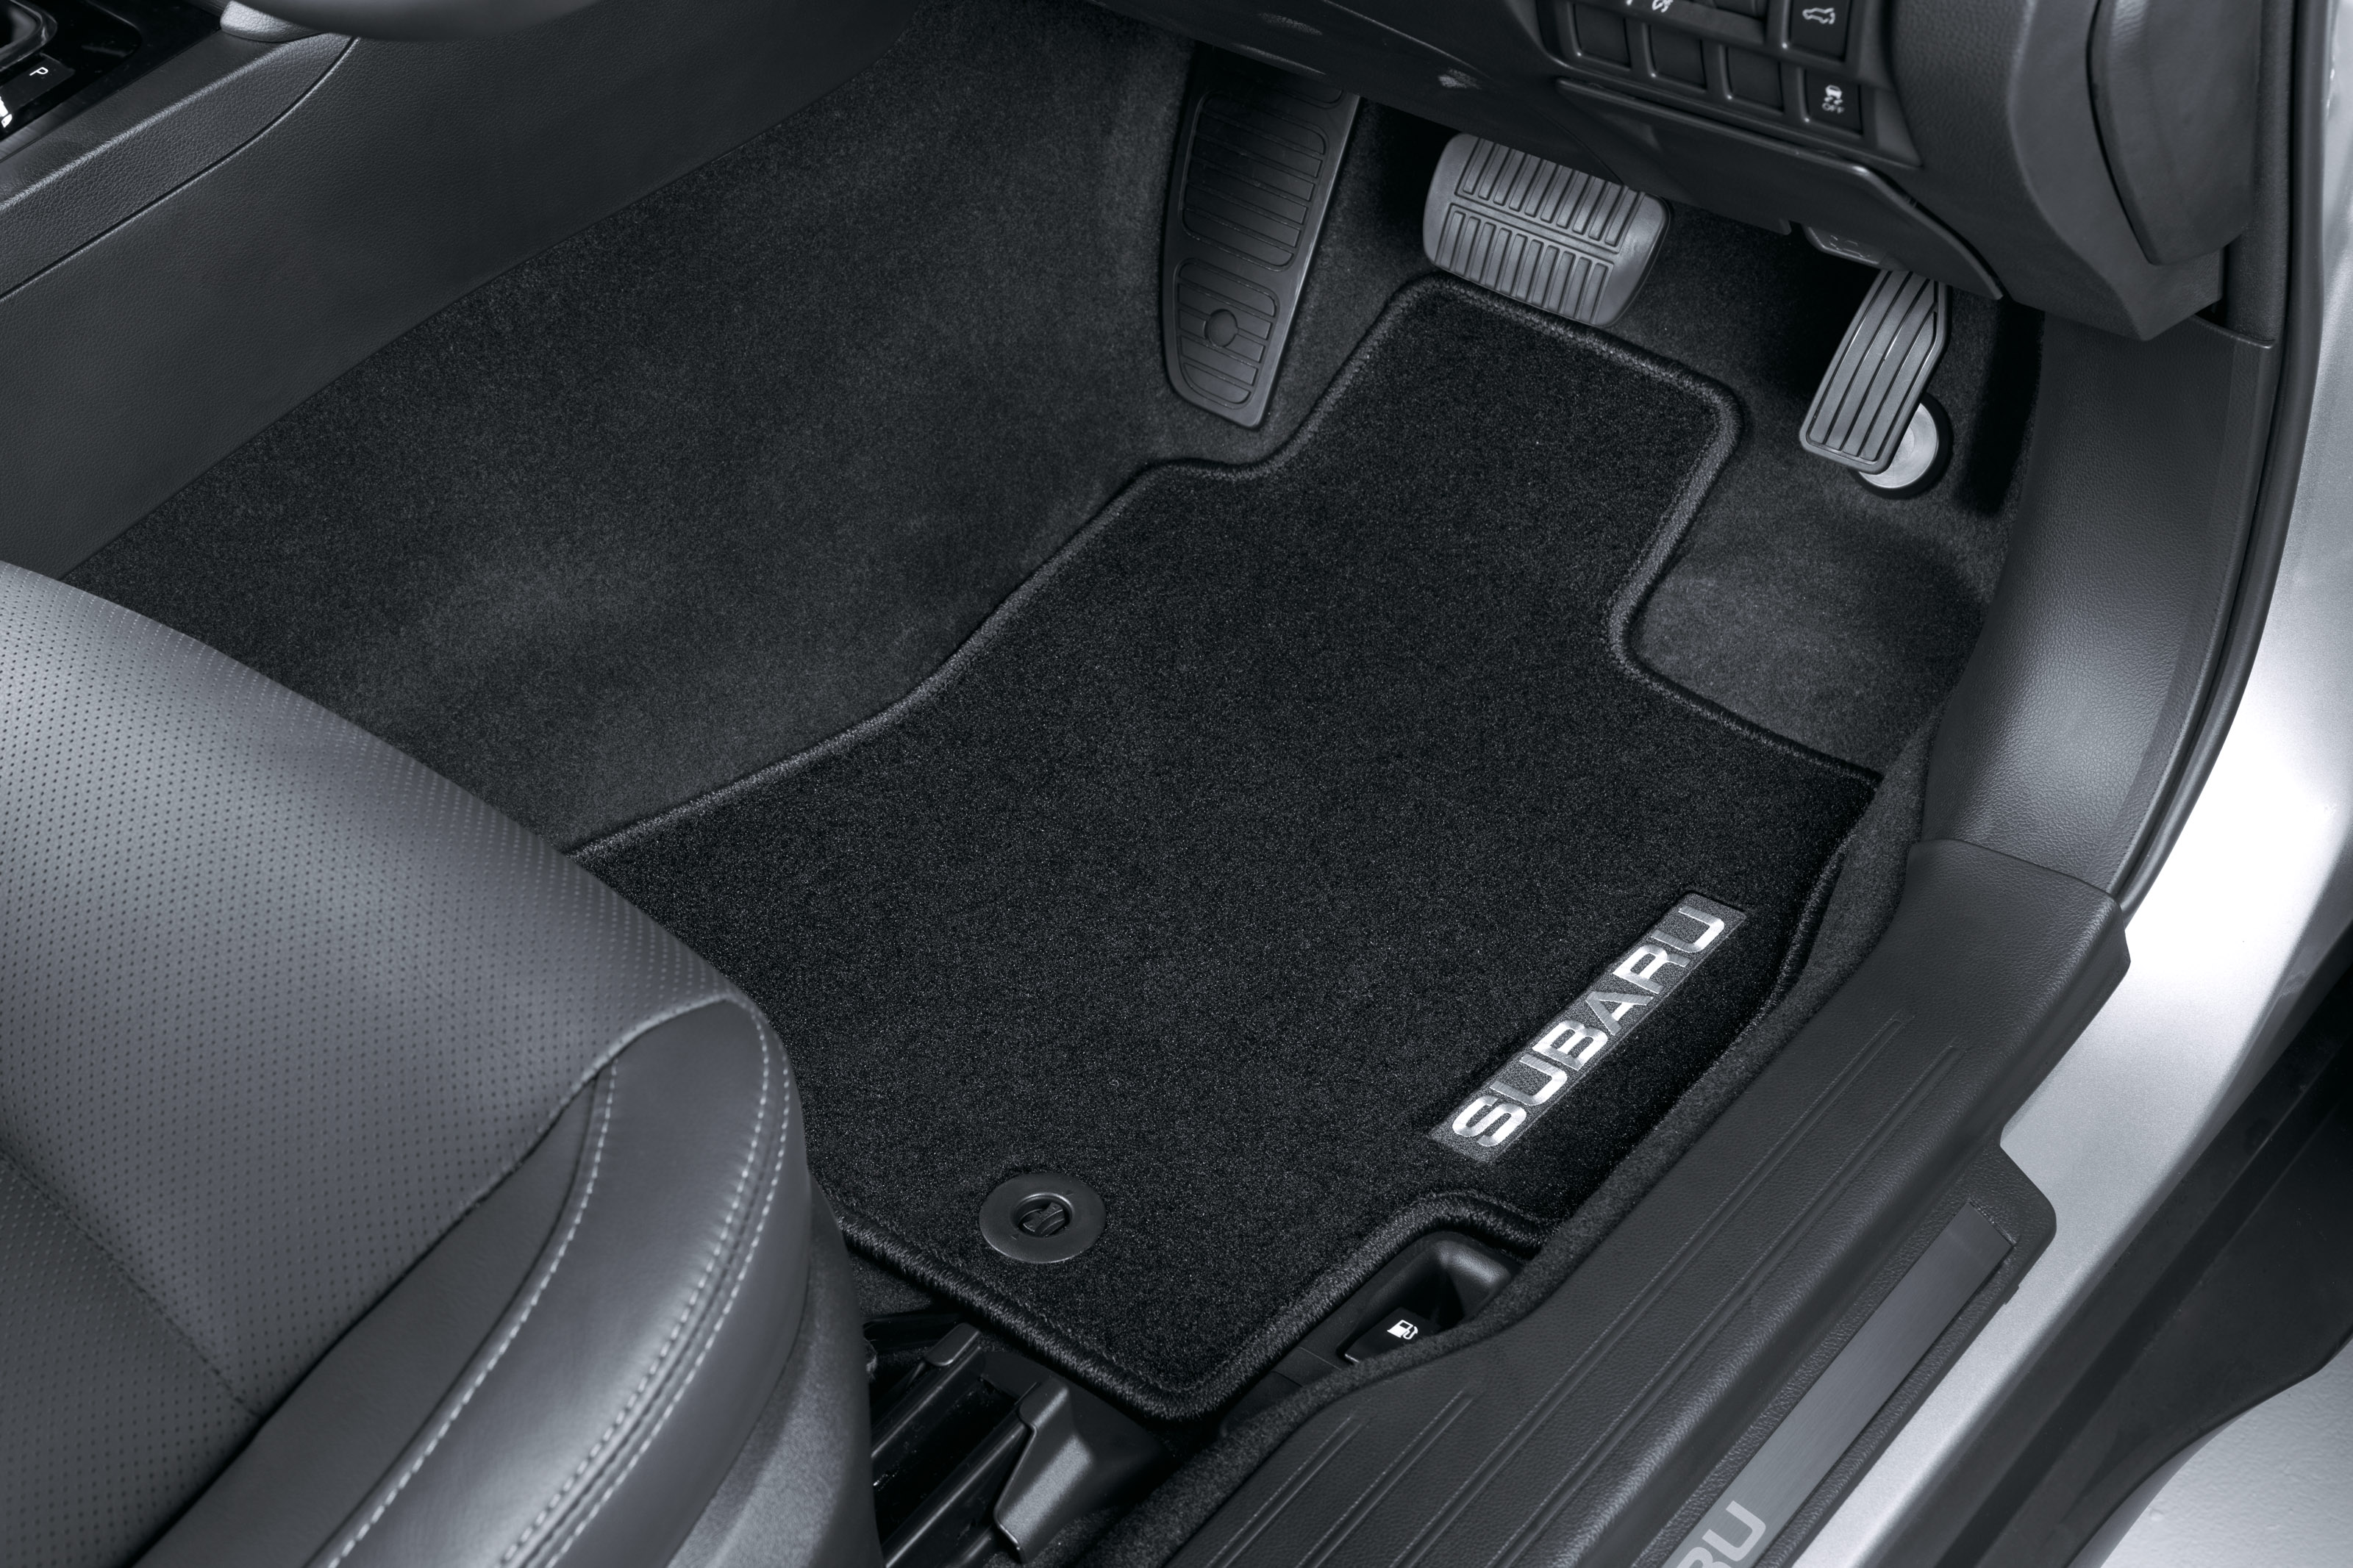 2017 subaru forester floor mats laser measured floor. Black Bedroom Furniture Sets. Home Design Ideas